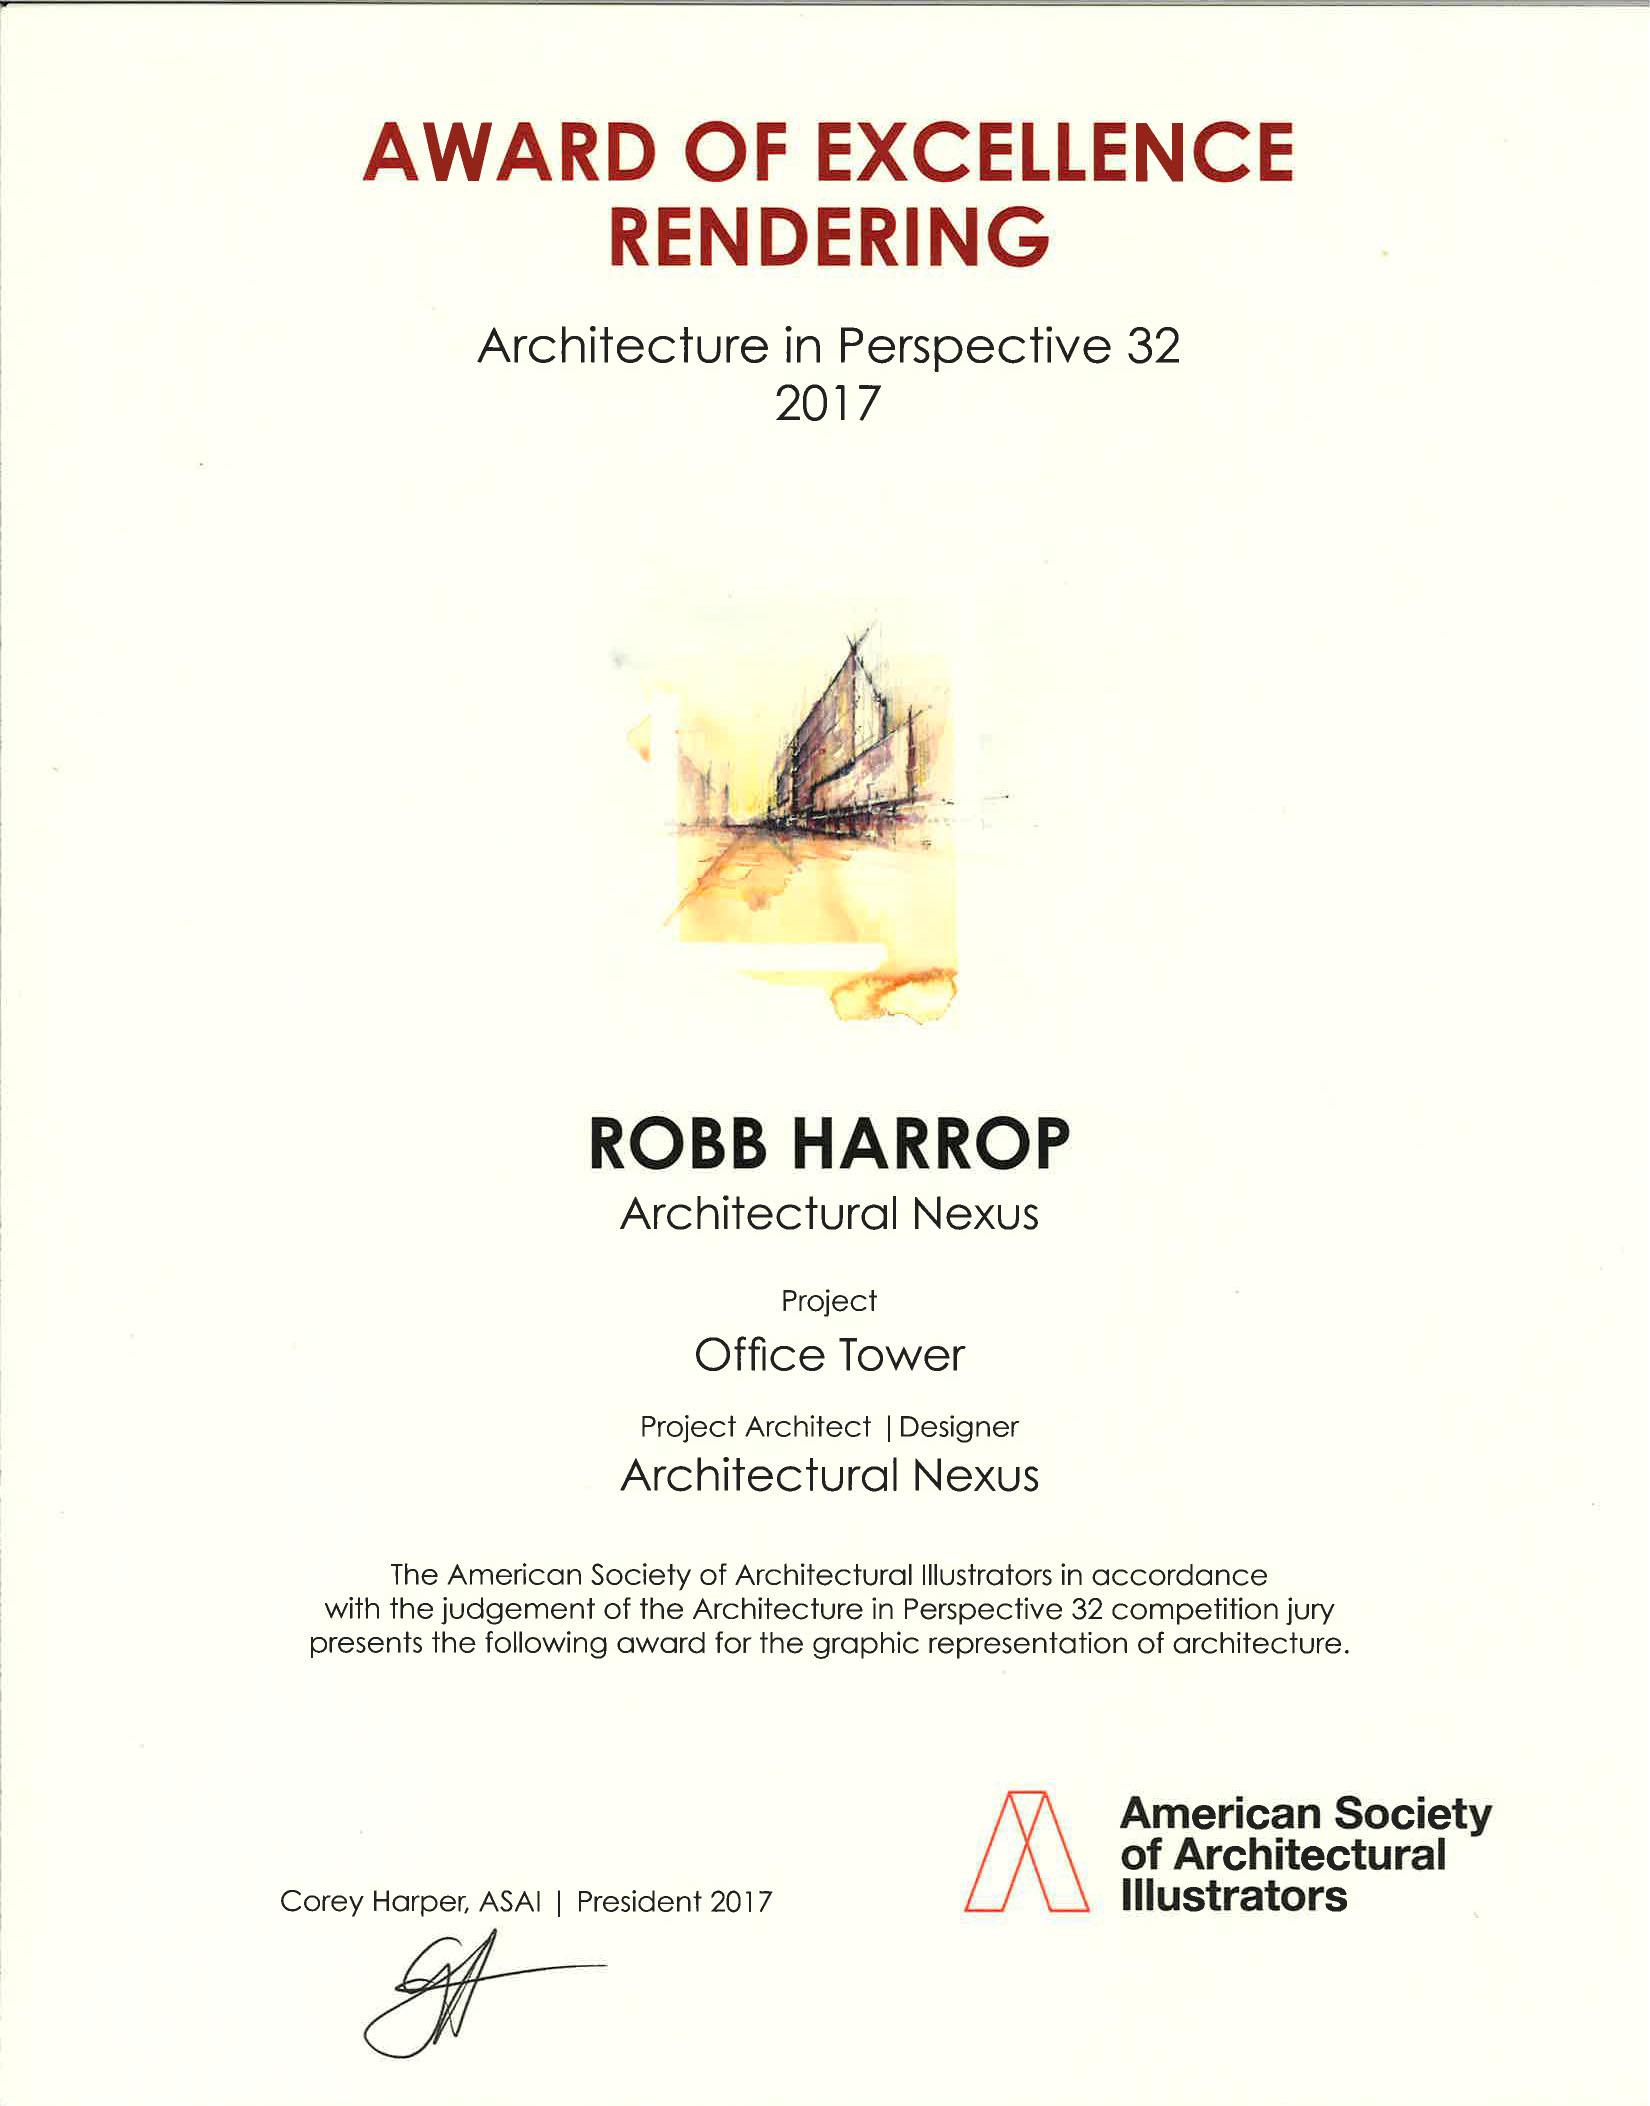 ASAI-Award-2017-Robb-Harrop01-1